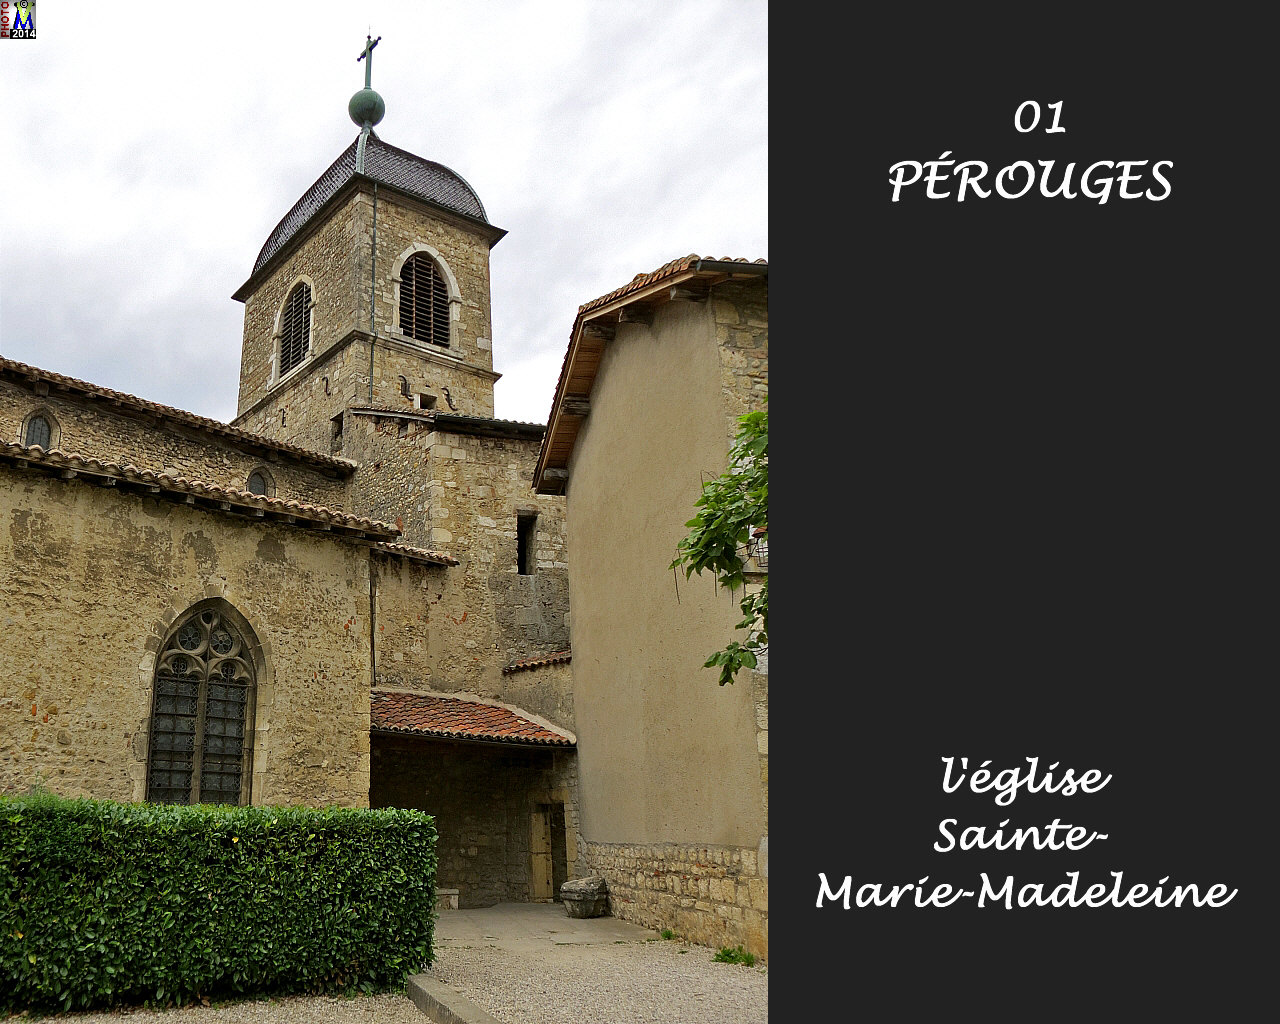 01PEROUGES_eglise_112.jpg